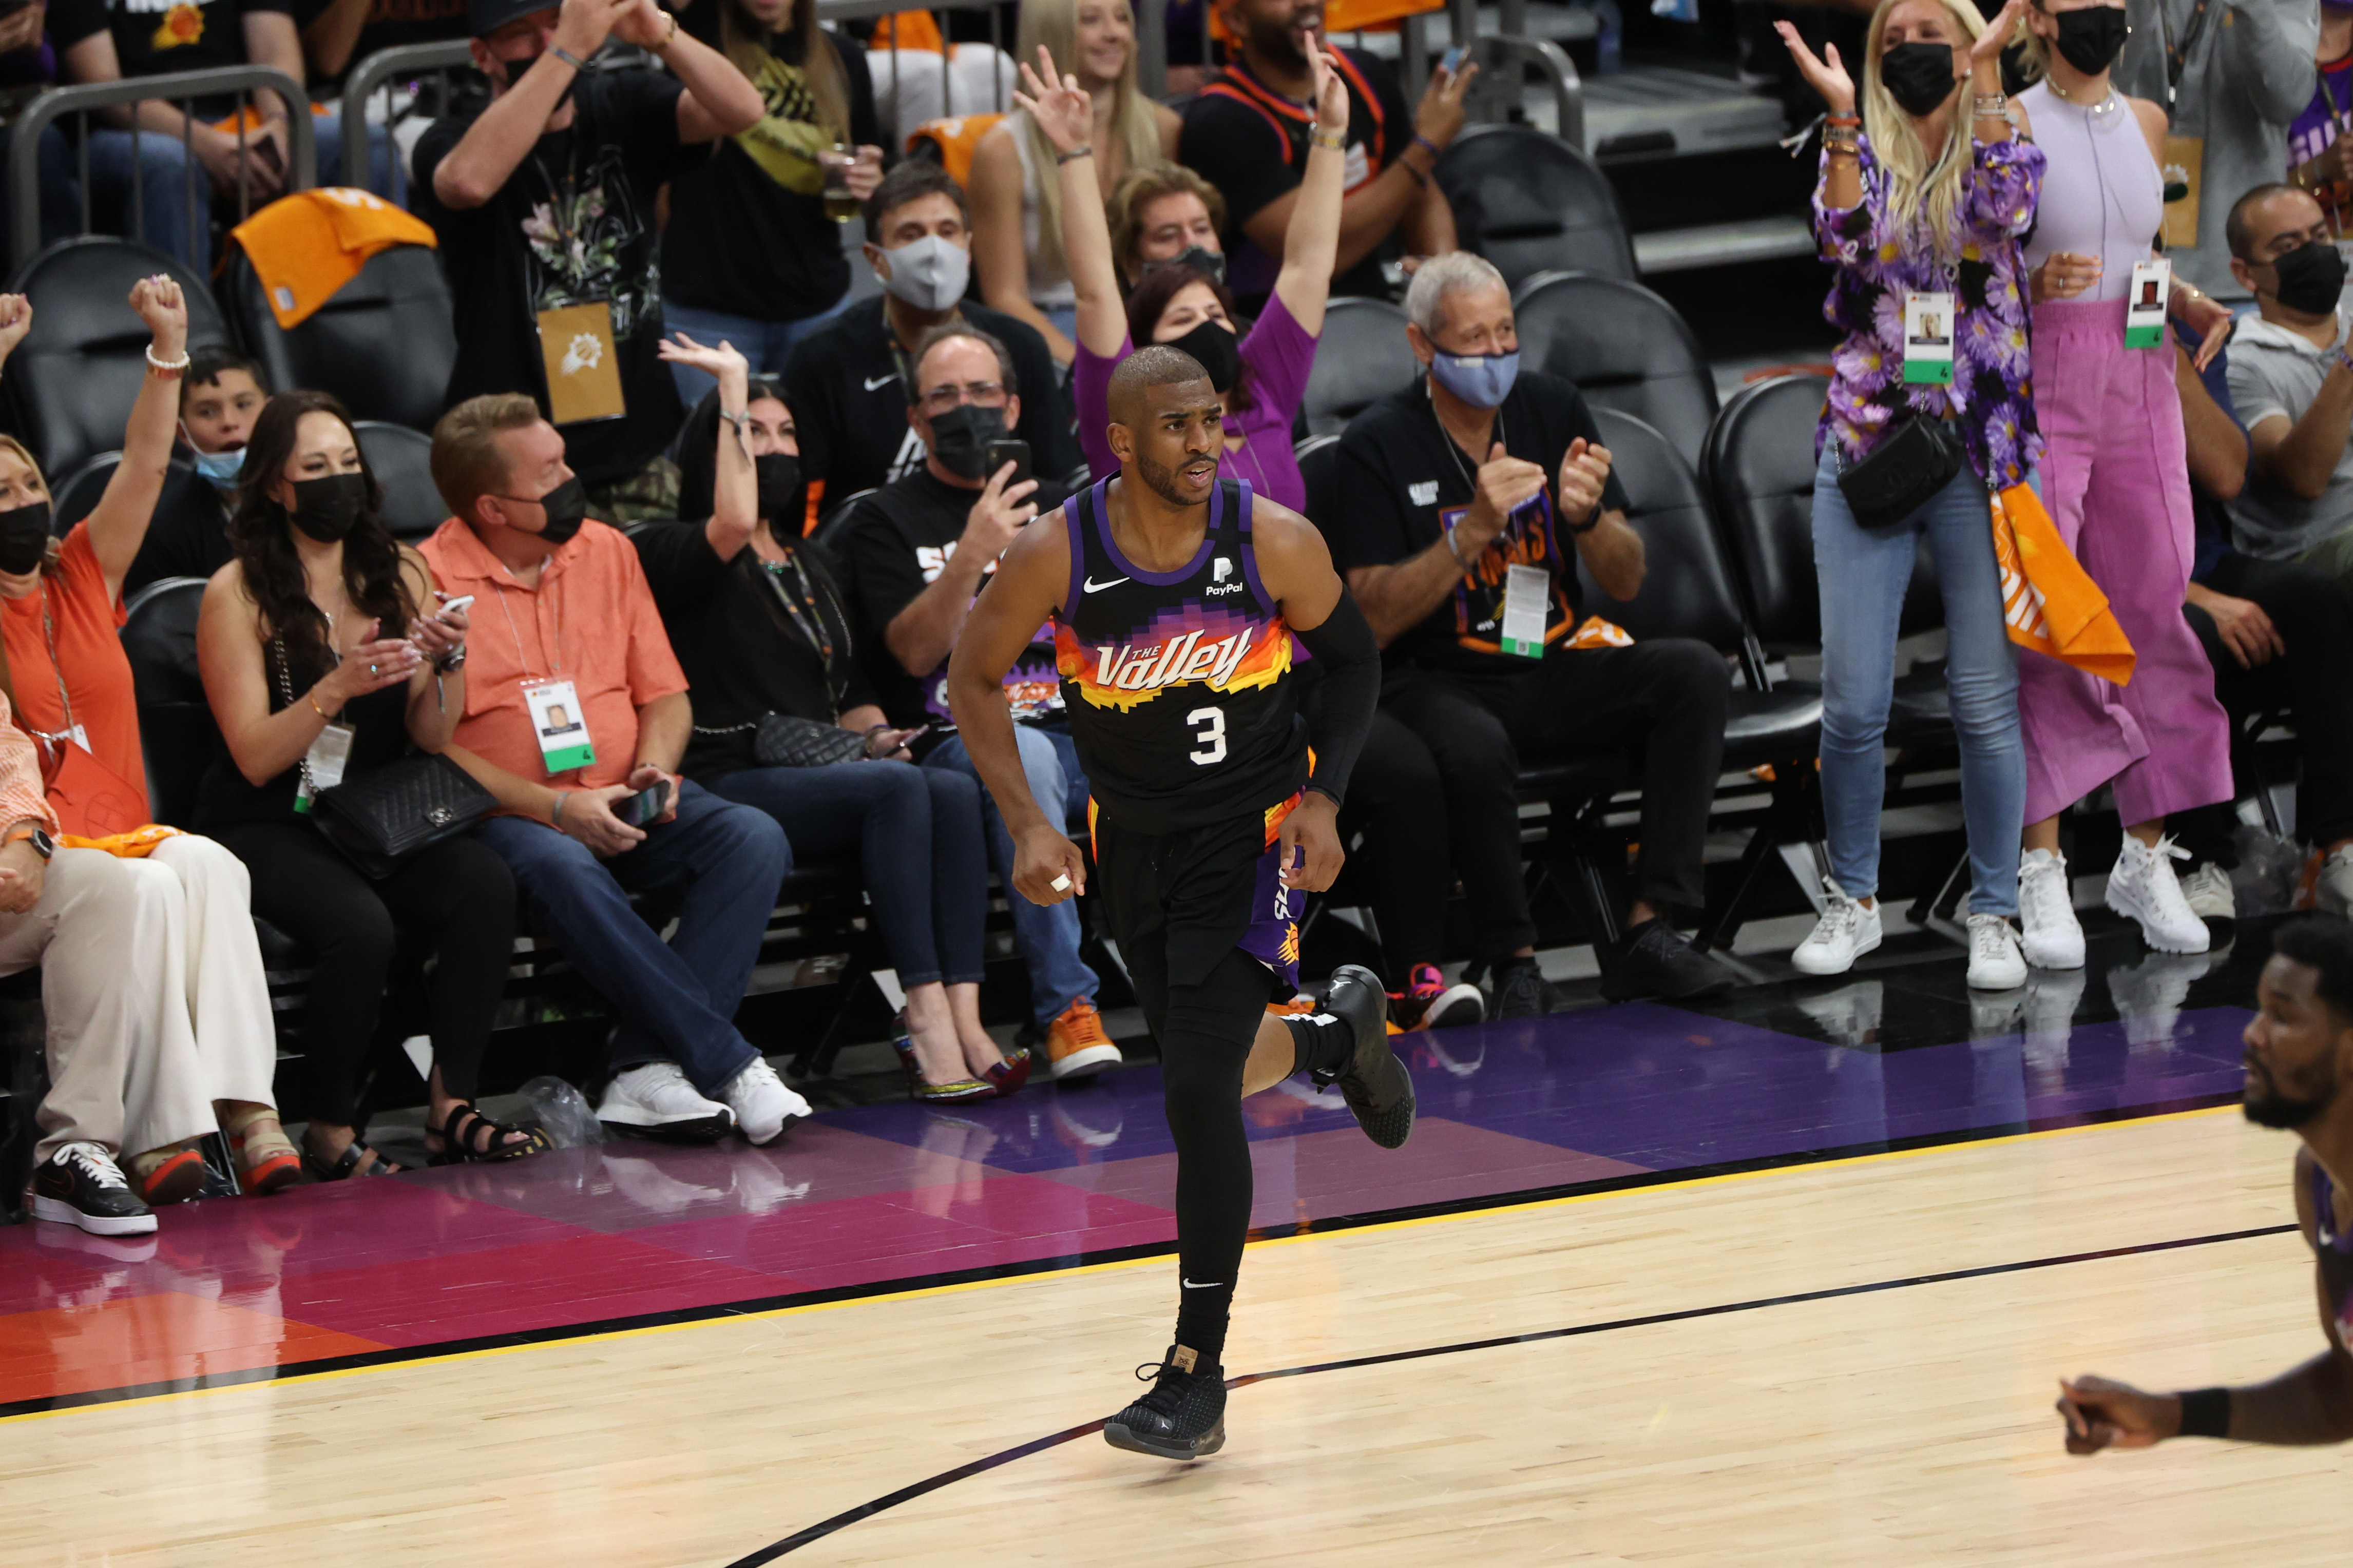 Chris Paul #3 of the Phoenix Suns celebrates during Game One of the 2021 NBA Finals on July 6, 2021 at Phoenix Suns Arena in Phoenix, Arizona.